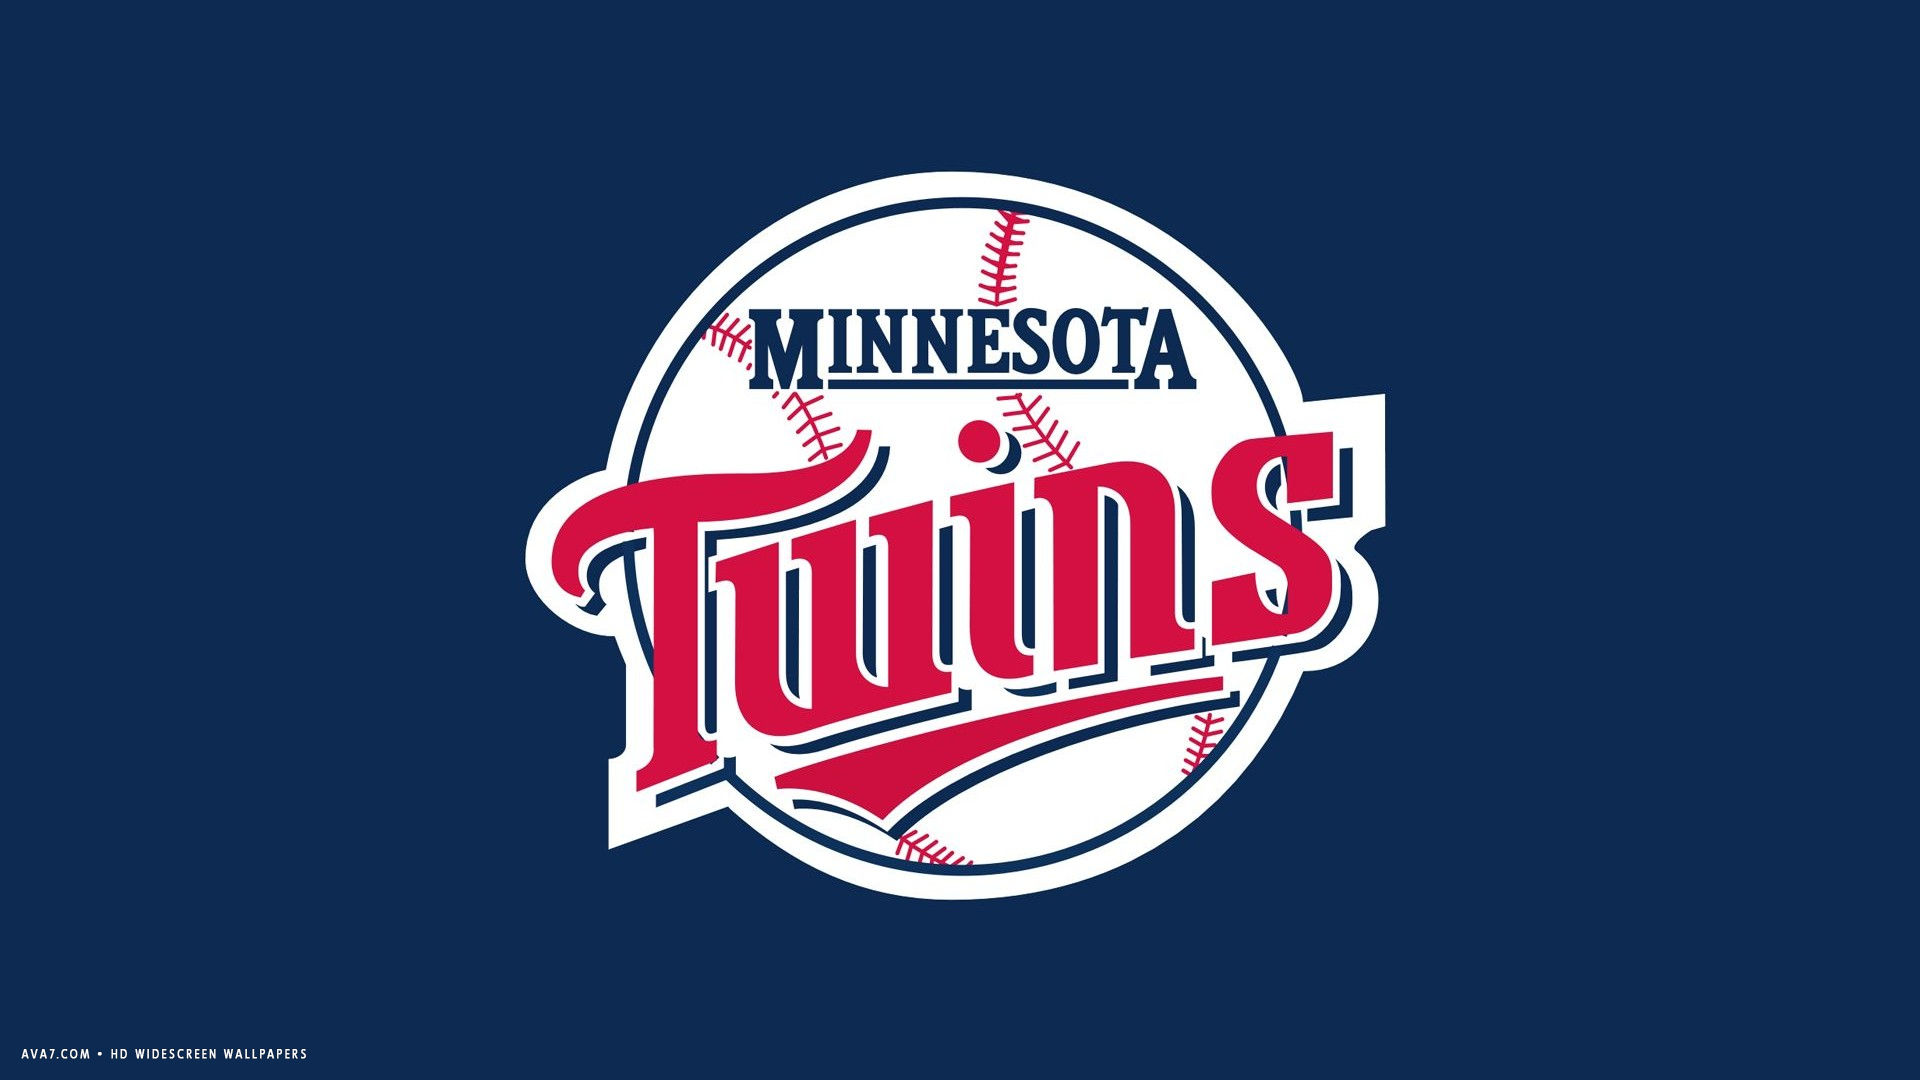 minnesota twins mlb baseball team hd widescreen wallpaper 1920x1080